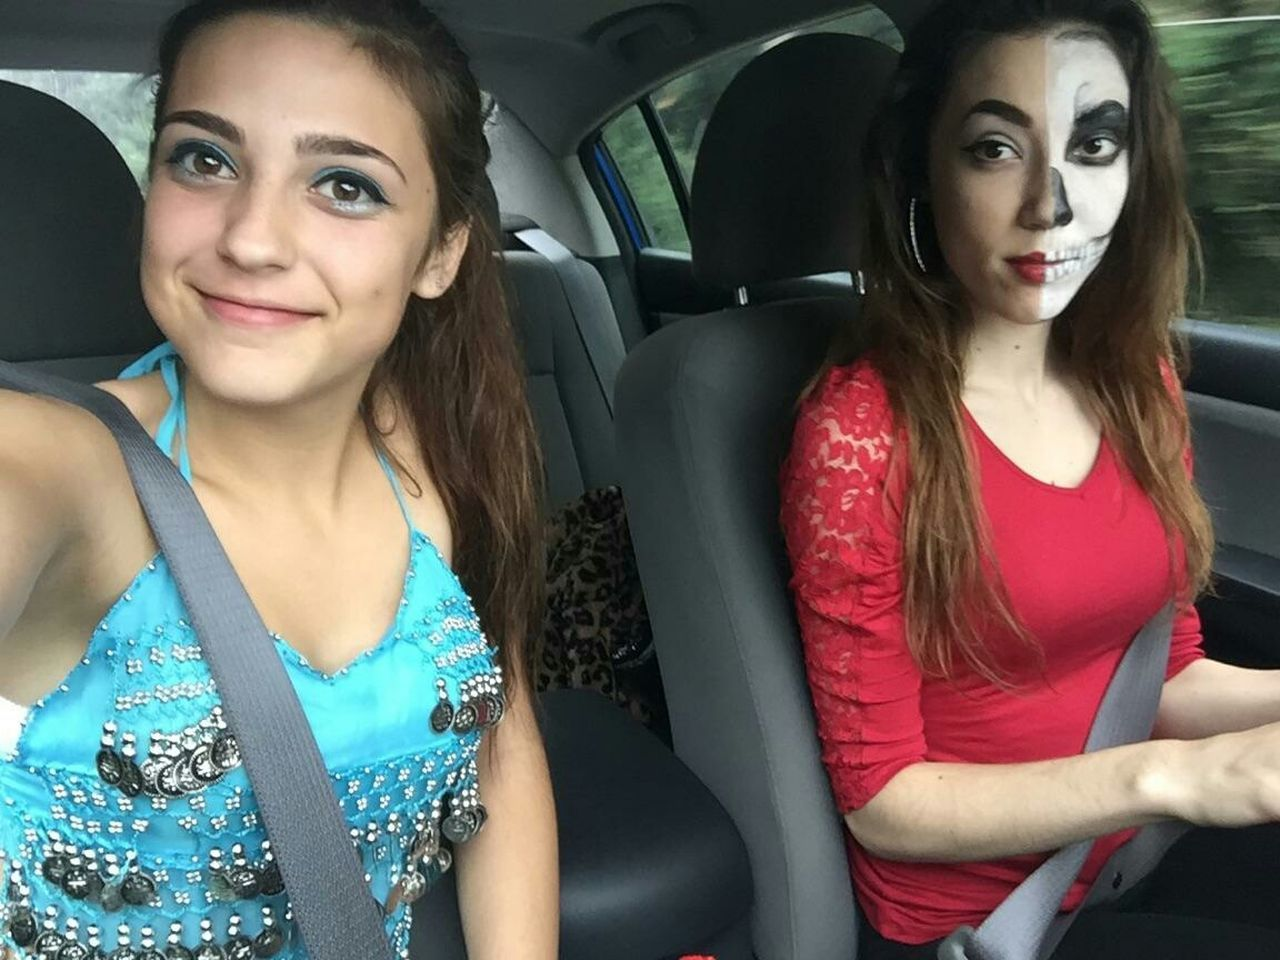 Happy Halloween 2015 Sisters Belly Dancer Skeleton Makeup Were Cute